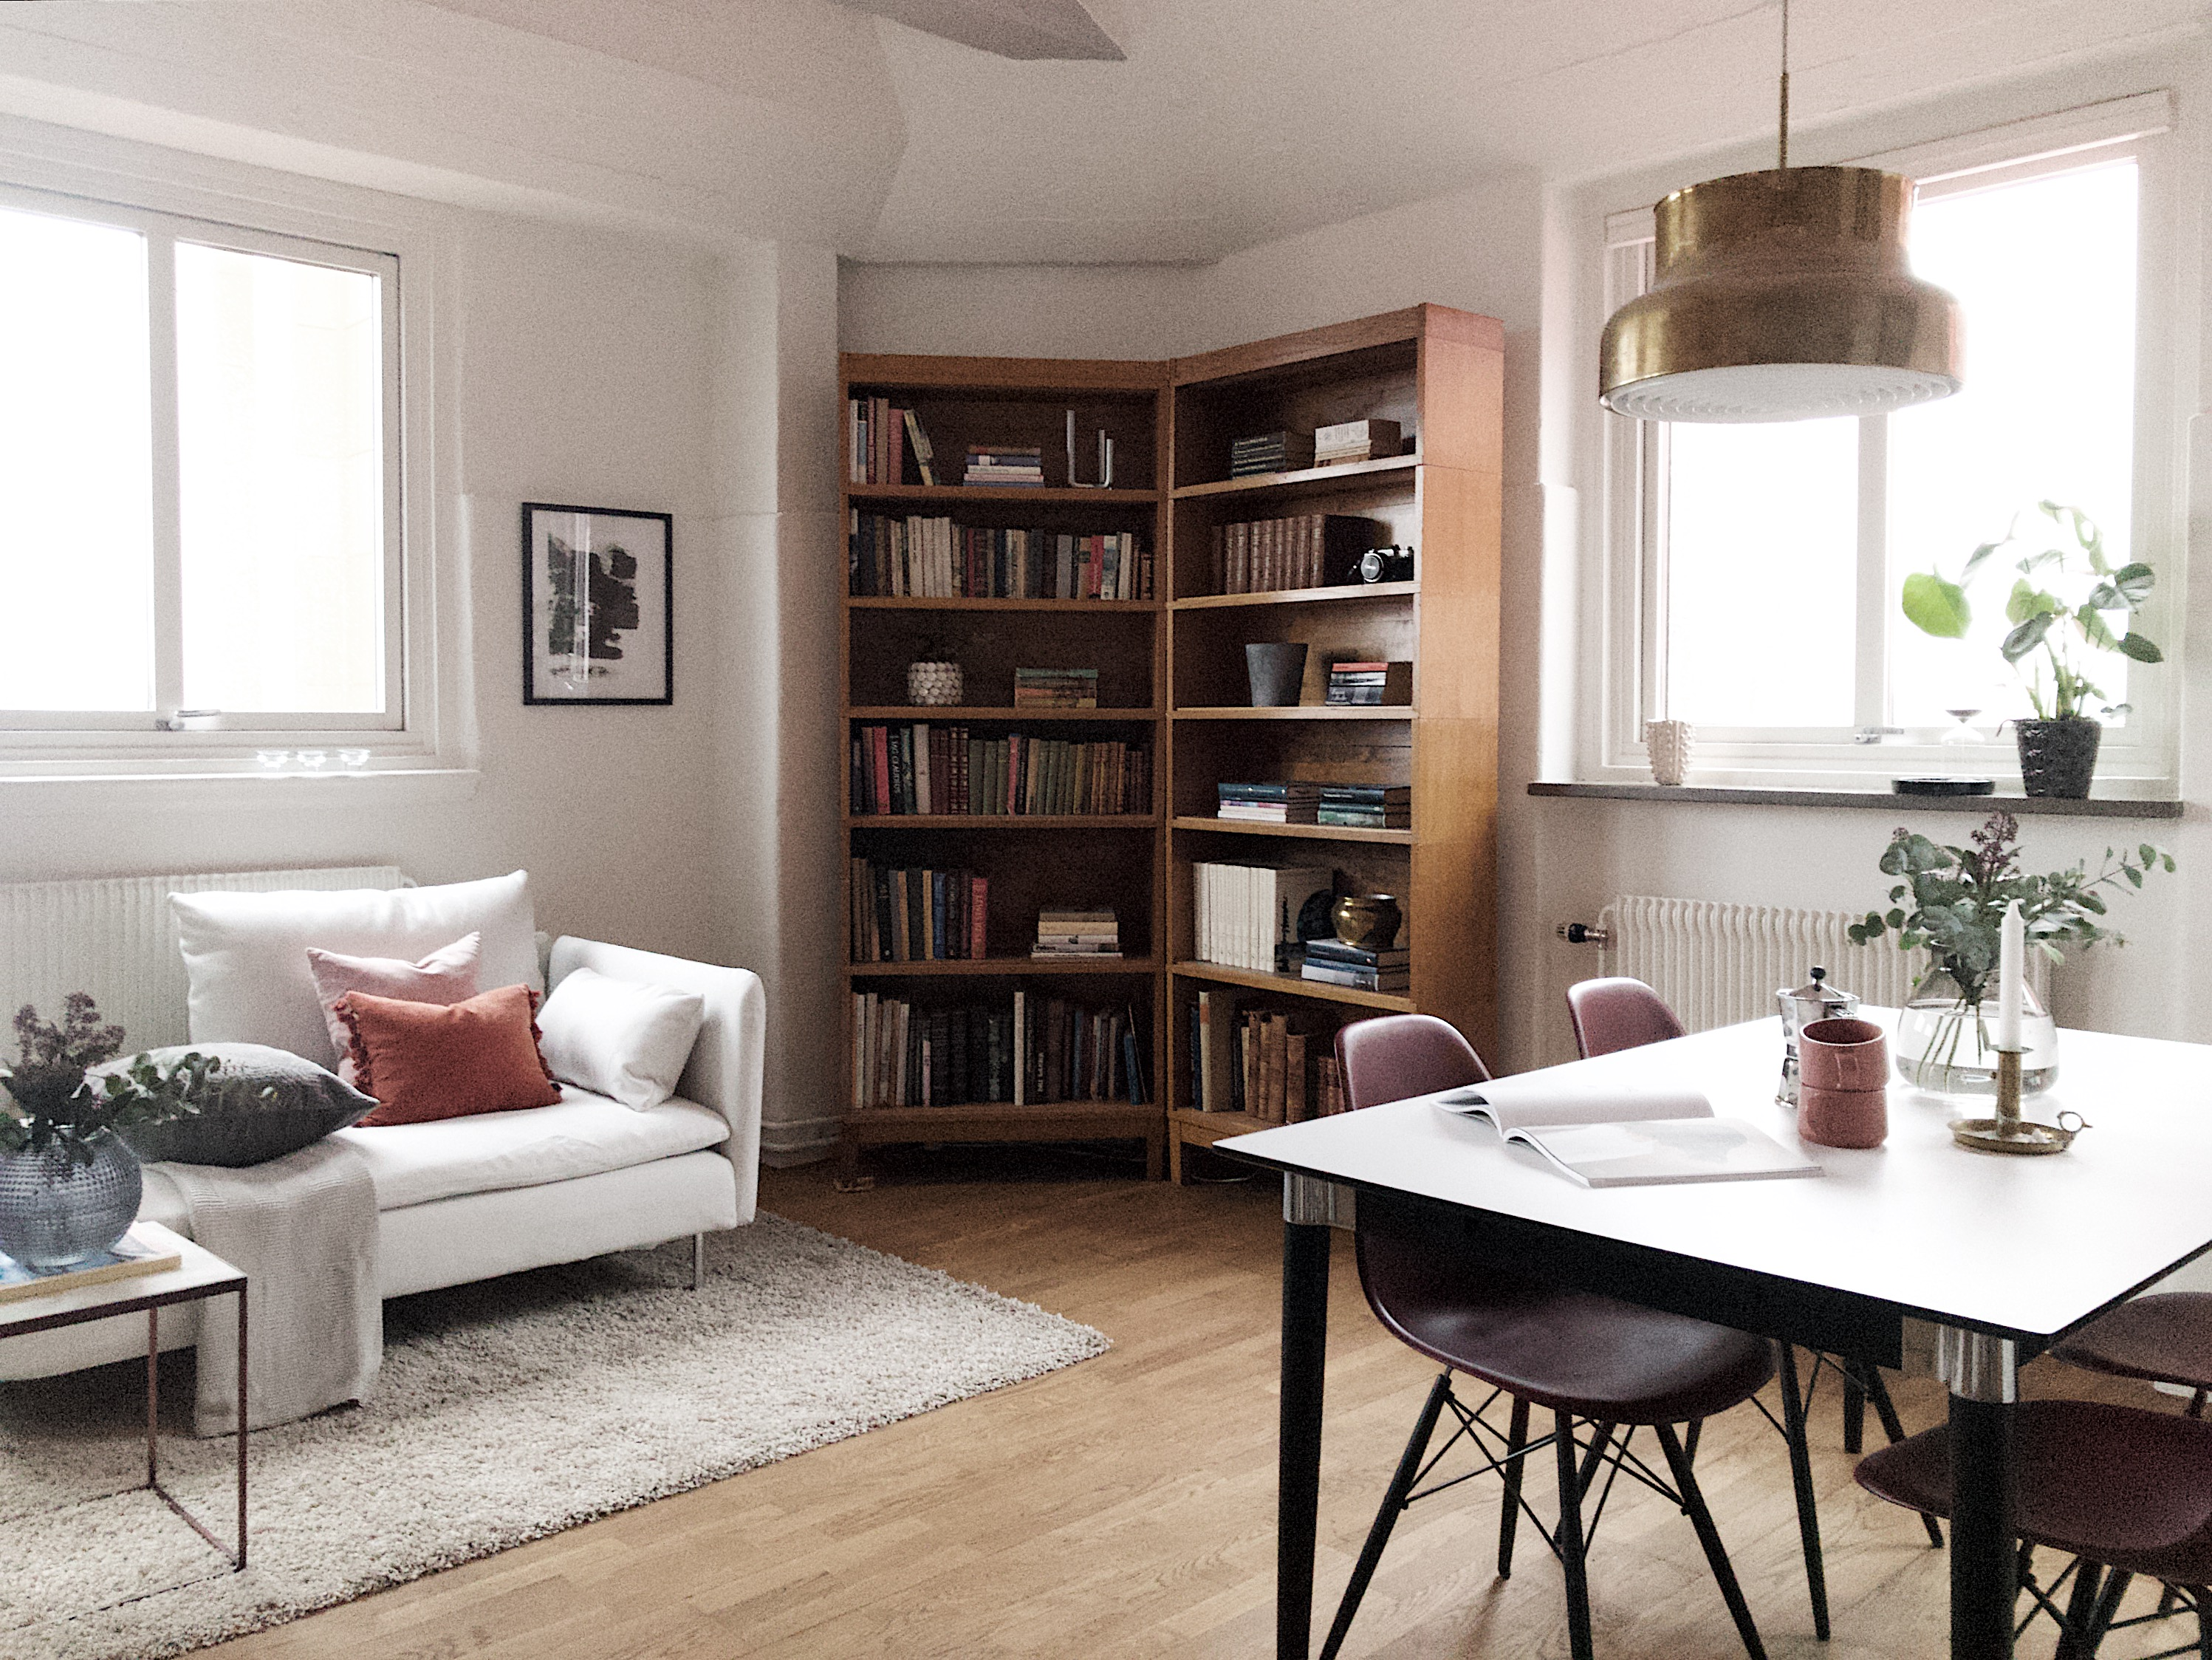 homestyling, lasarettsgatan 6, studio in